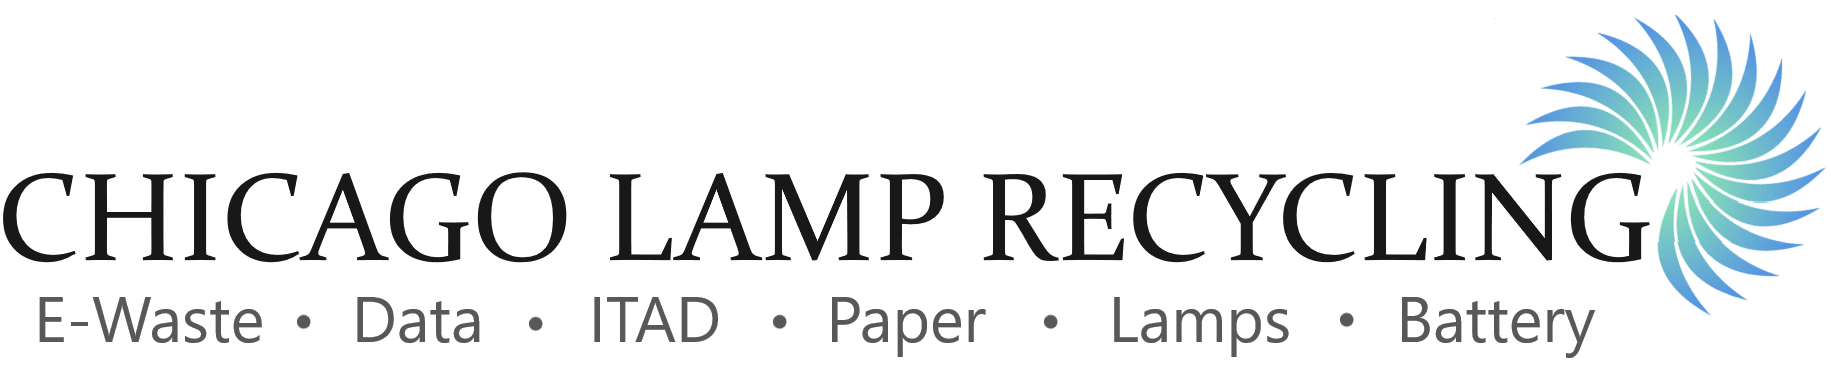 Chicago Lamp Recycling | E-Waste Recycling